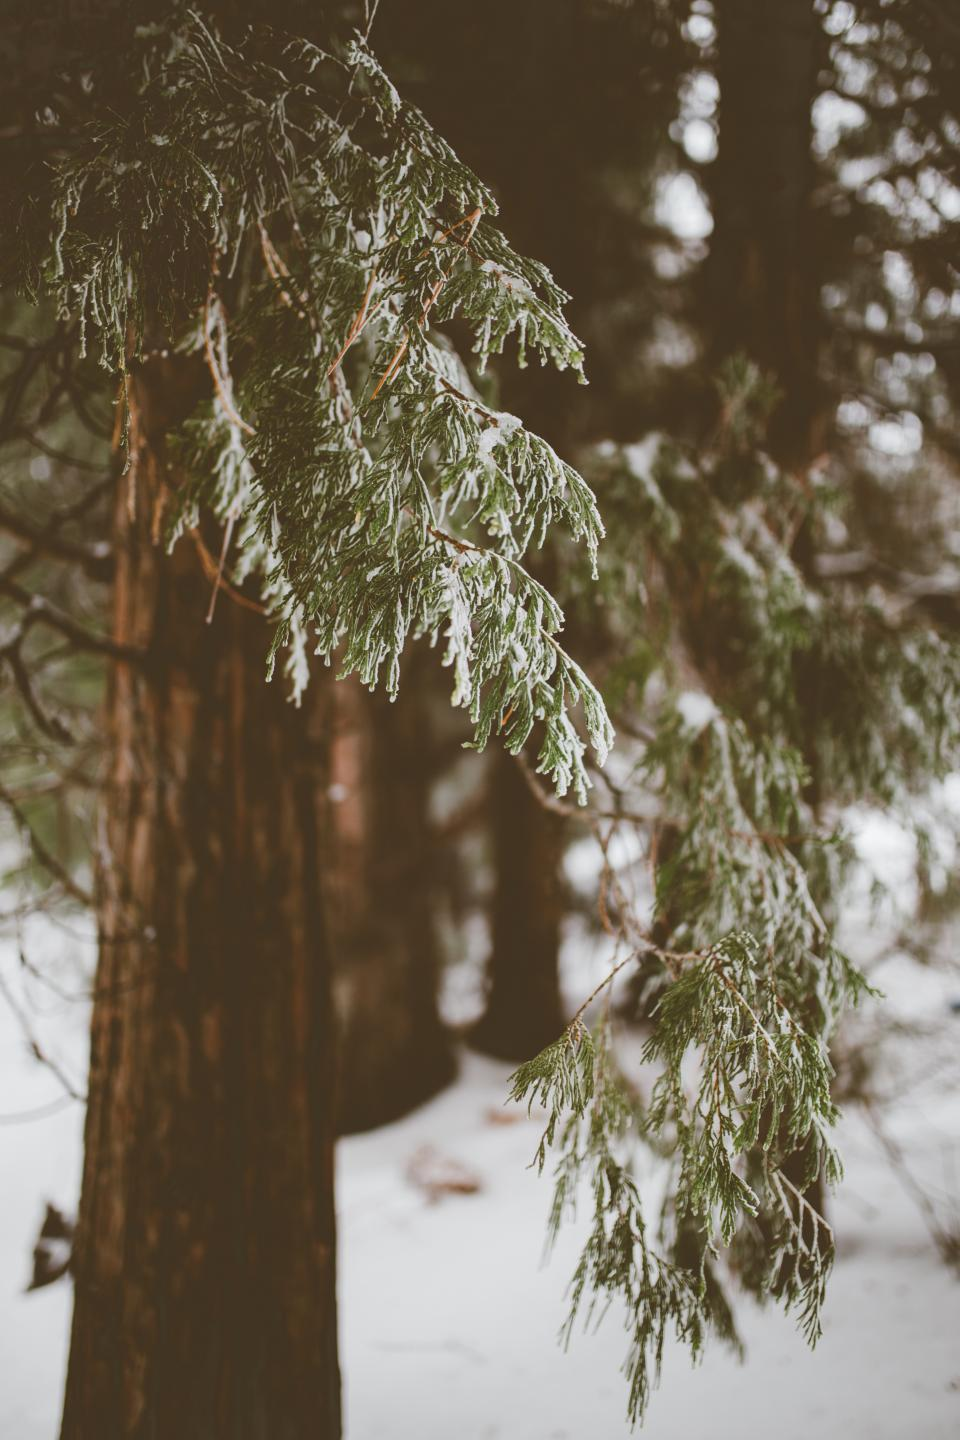 trees plant nature branch leaves snow winter cold weather